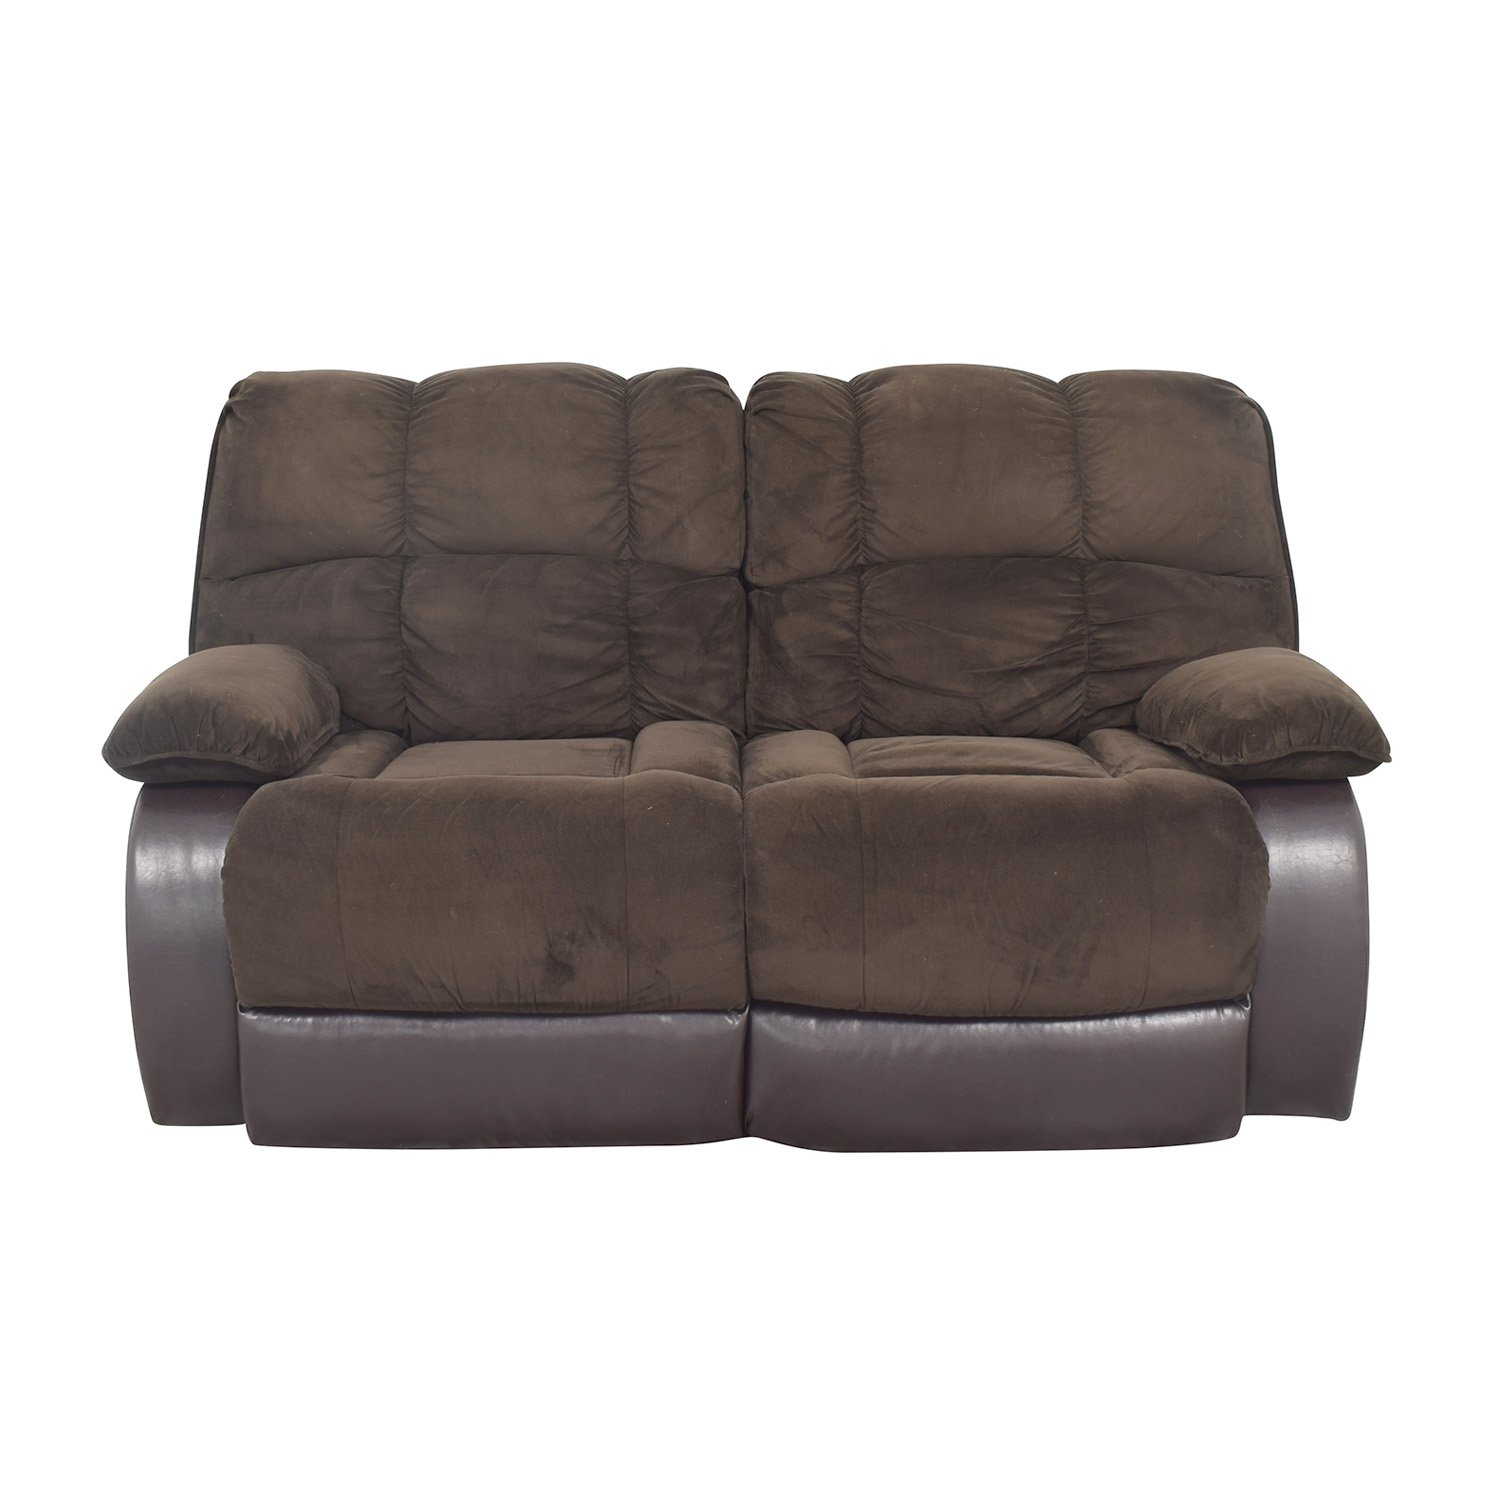 Raymour & Flanigan Raymour & Flanigan Reclining Loveseat used